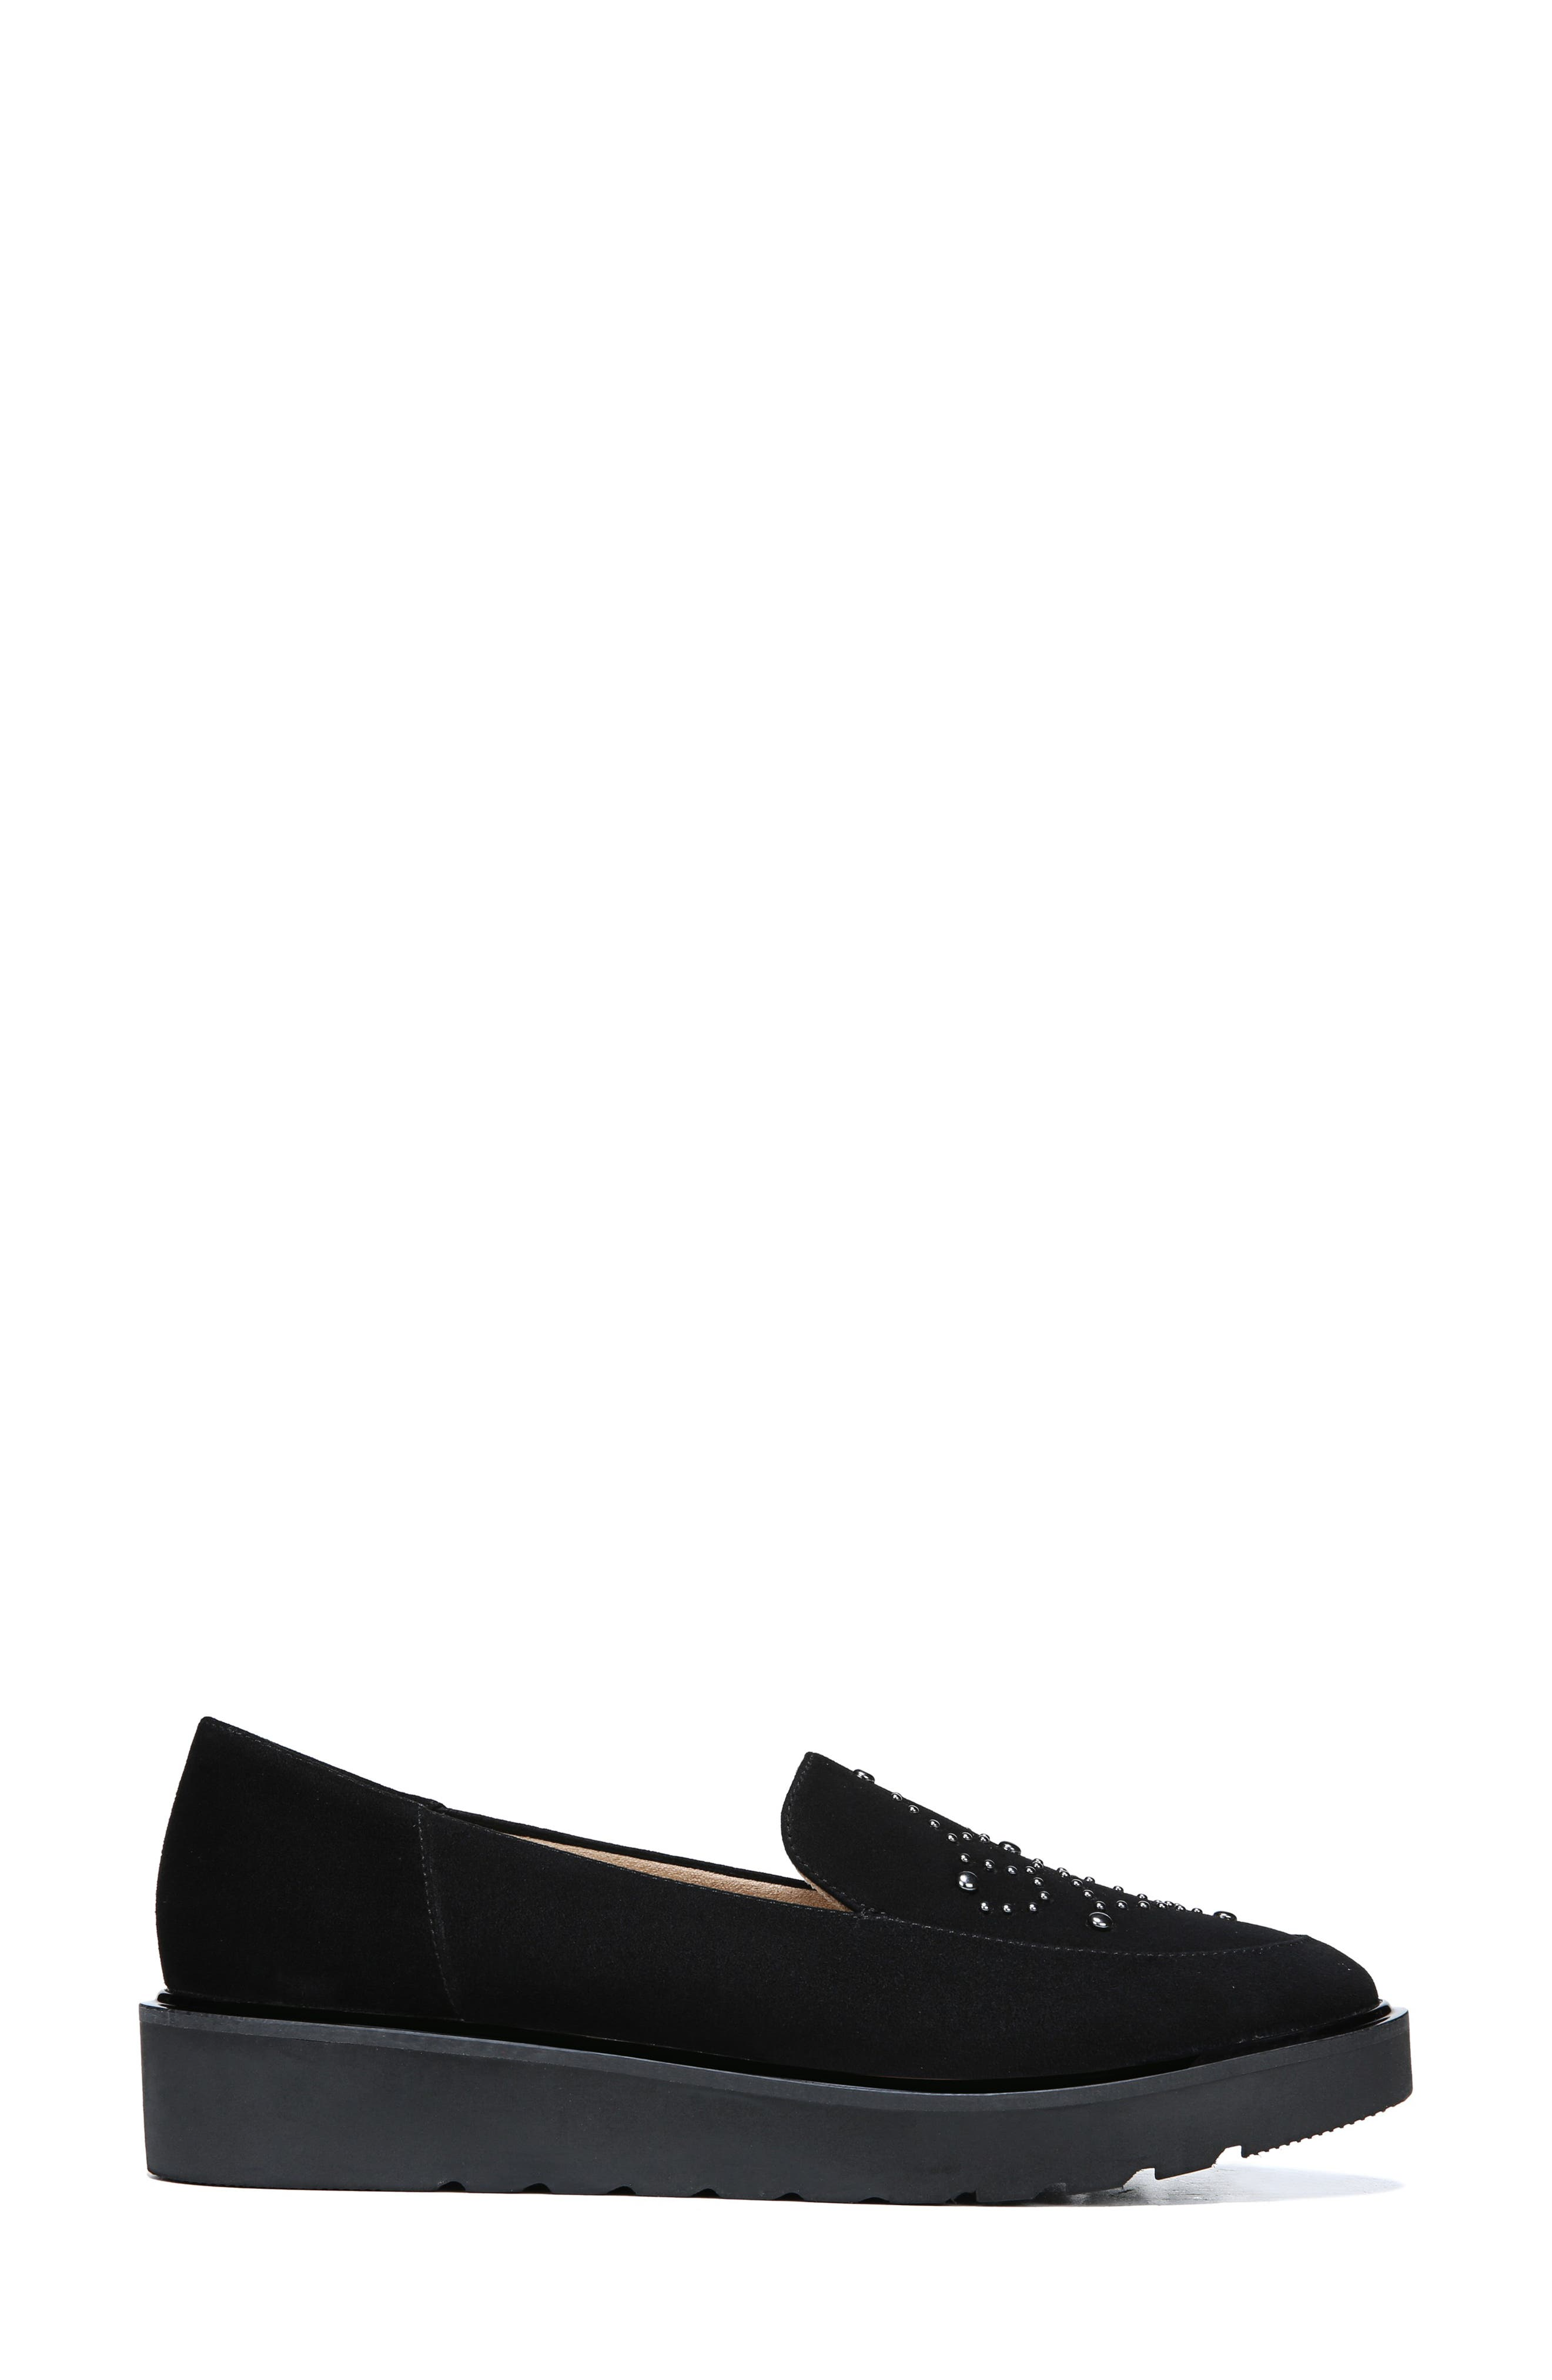 Andie Loafer,                             Alternate thumbnail 2, color,                             BLACK SUEDE